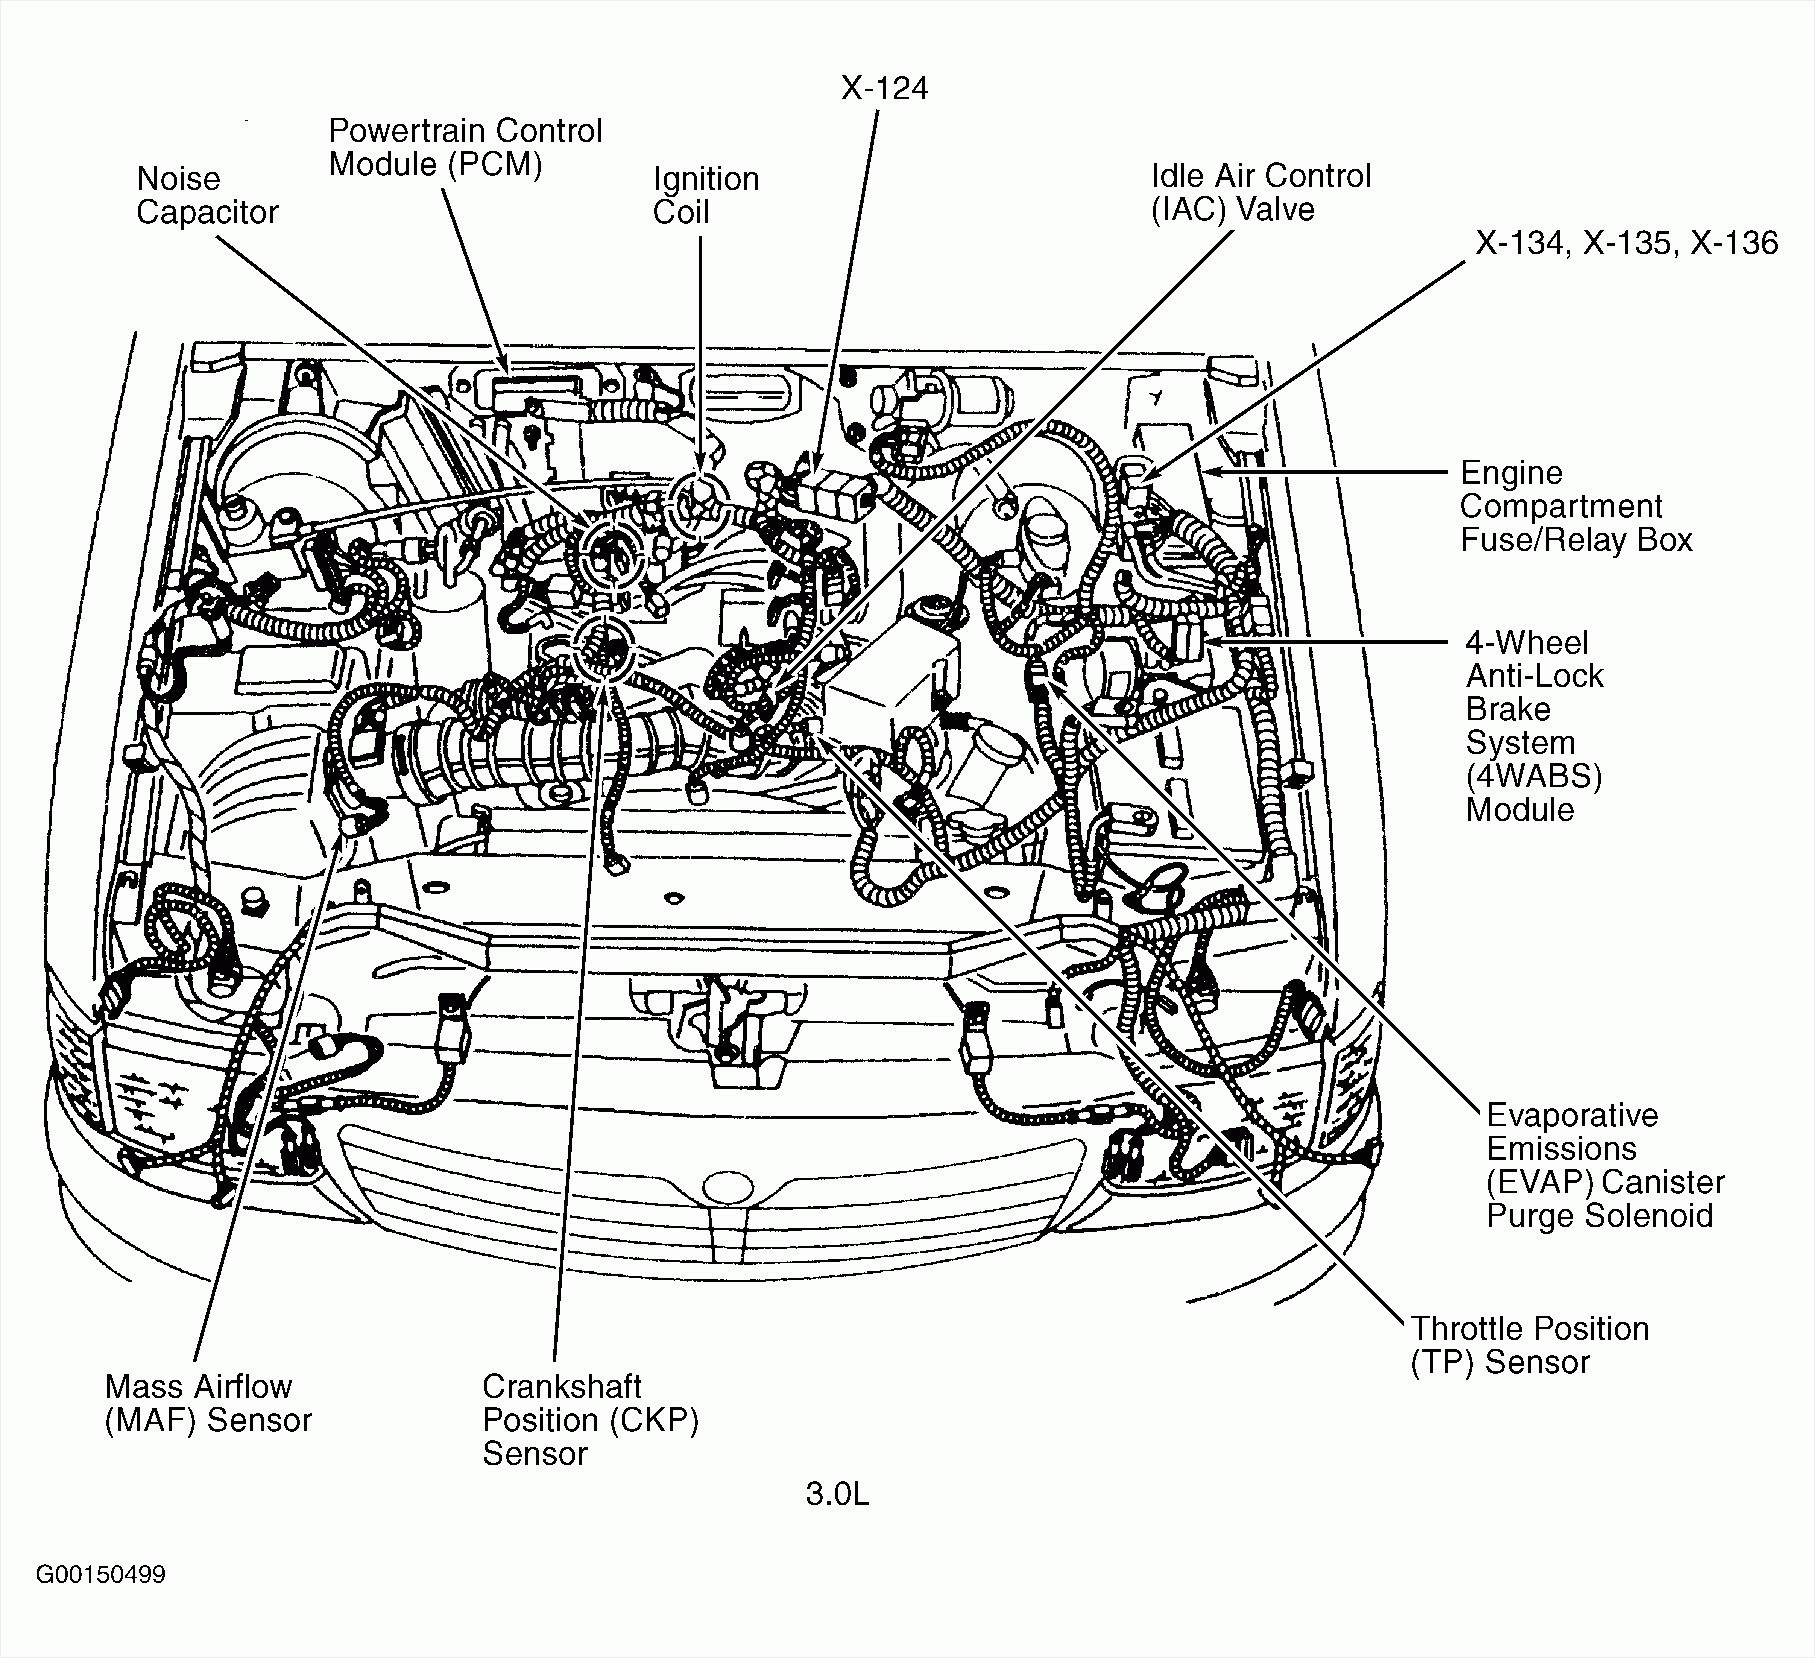 diagram] 1995 toyota ta engine diagram full version hd quality engine  diagram - mano-diagram.morningkiss.fr  diagram database